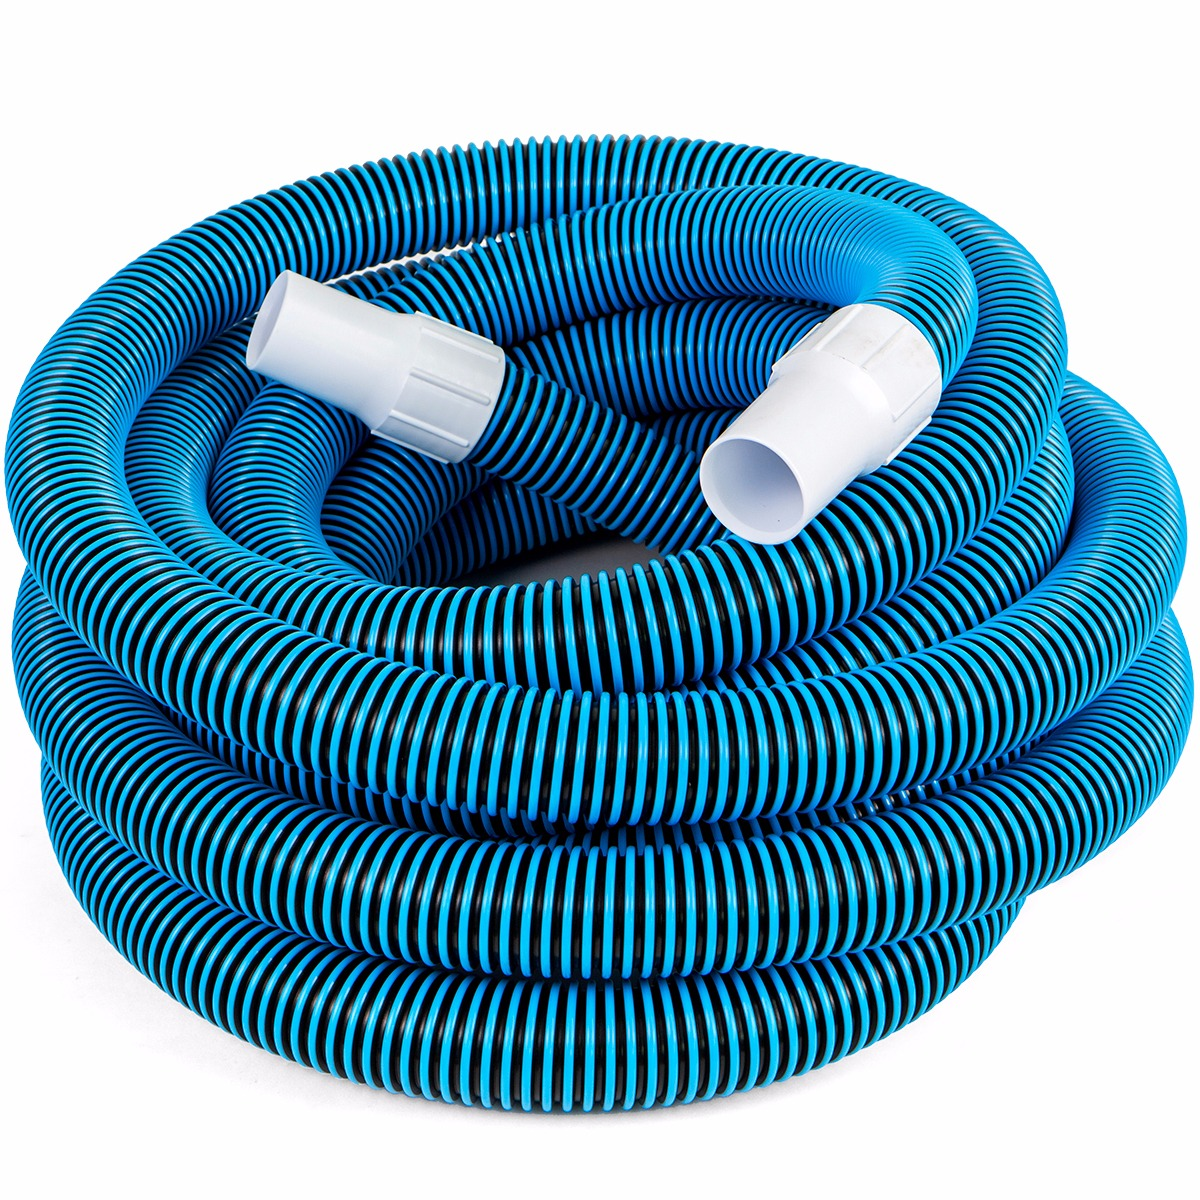 "XtremepowerUS 1-1/2"" 30' Swimming Pool Vacuum Hose, with Swivel Cuff"